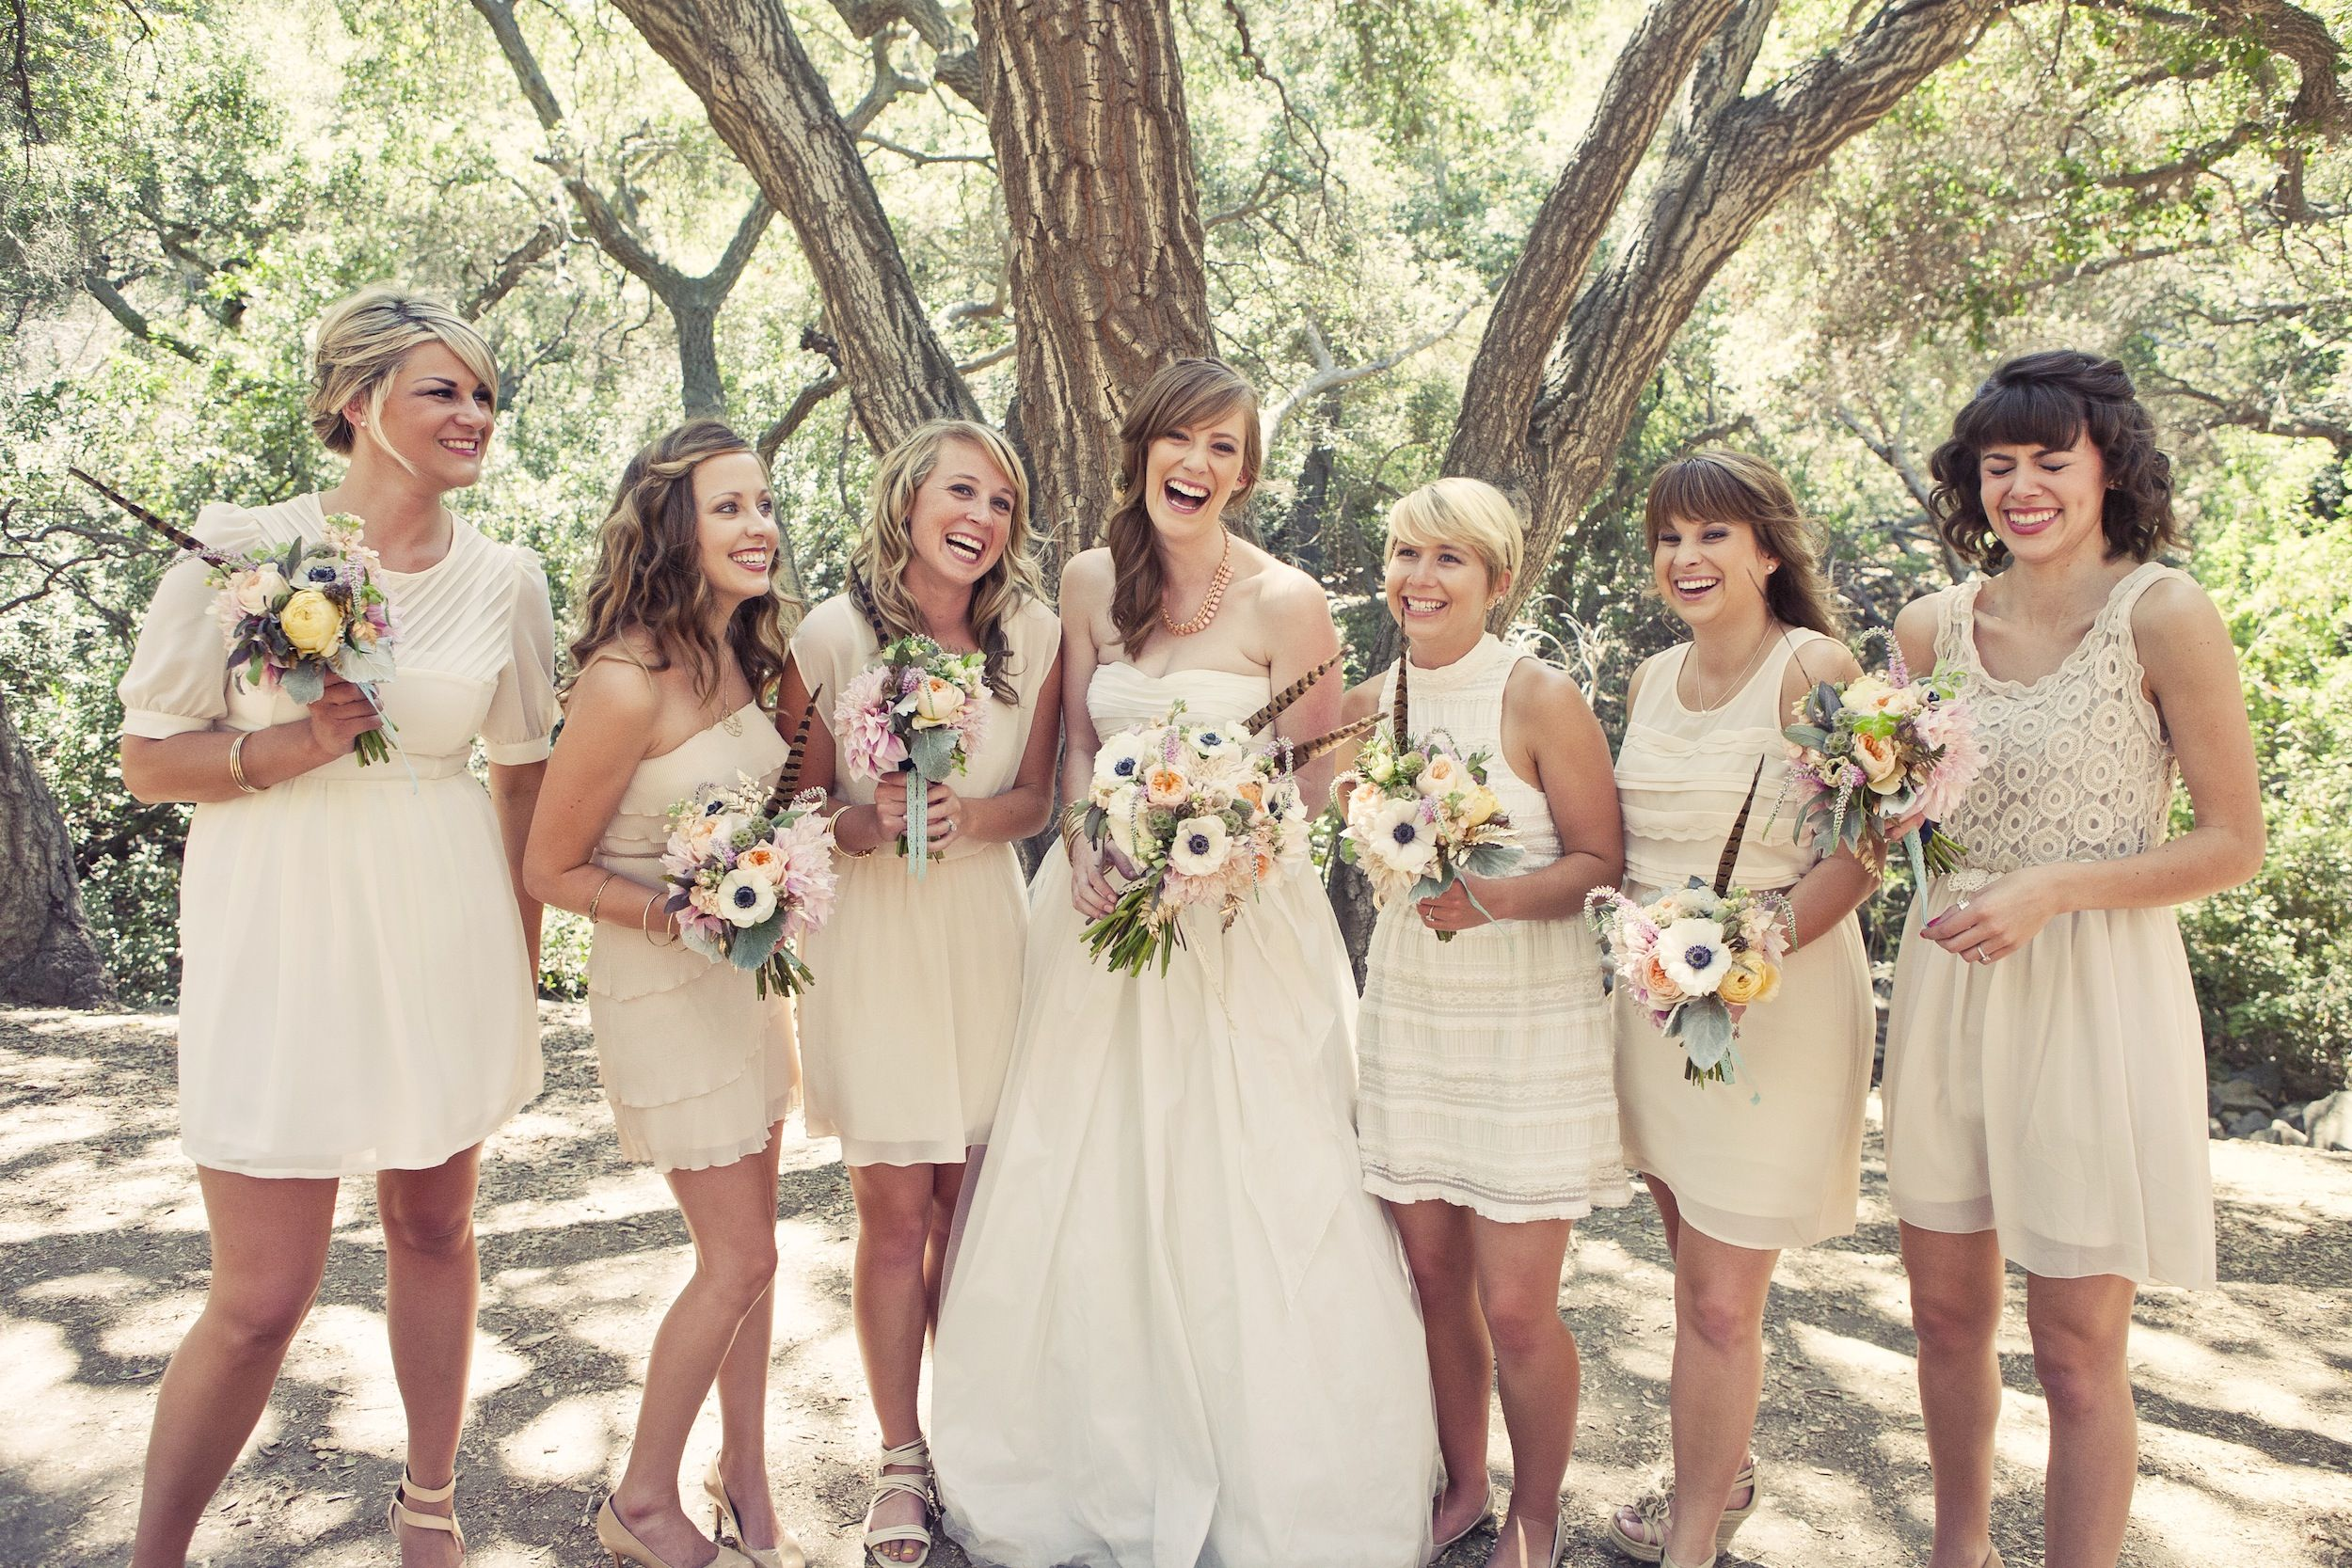 Vintage style california wedding white bridesmaid dresses tan white bridesmaid dresses inspiration from rustic wedding chic ombrellifo Choice Image